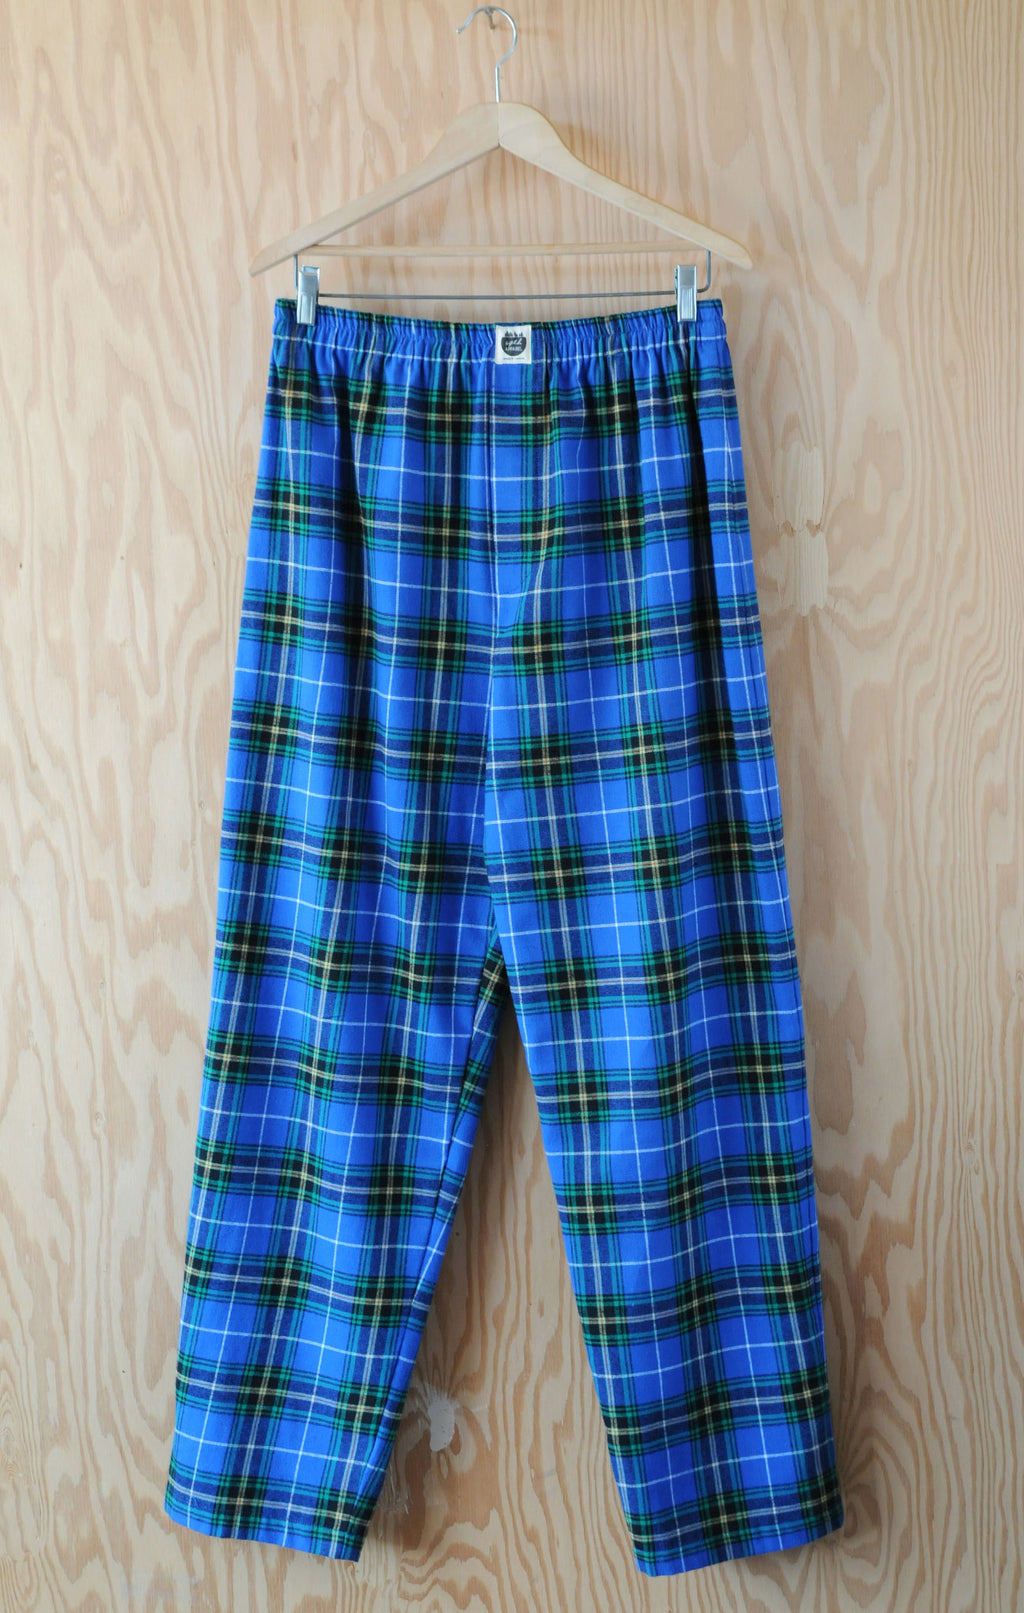 Men's Boxer Pants - Nova Scotia Tartan Flannel